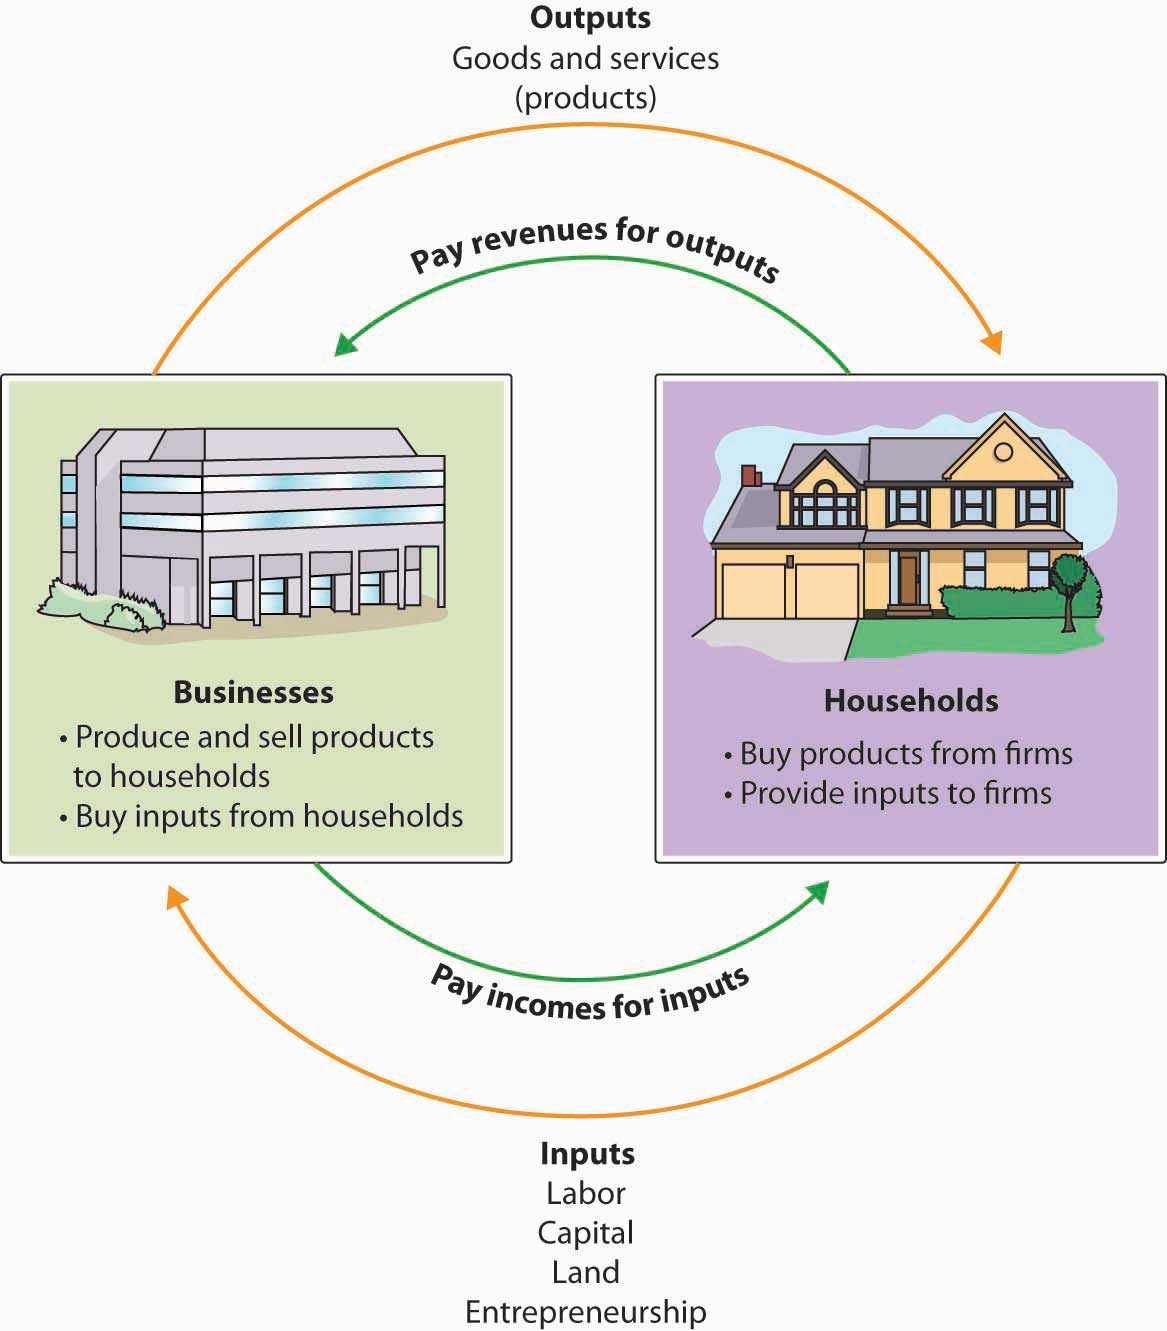 Inputs and Outputs diagram for Businesses and Households. Businesses produce and sell products to households and buy inputs from households. Businesses pay incomes for inputs. The outputs of businesses are goods and services (products). Households buy products from firms and provide inputs to firms. Households pay revenues for outputs. The Inputs of Households are labor, capital, land, and entrepreneurship.